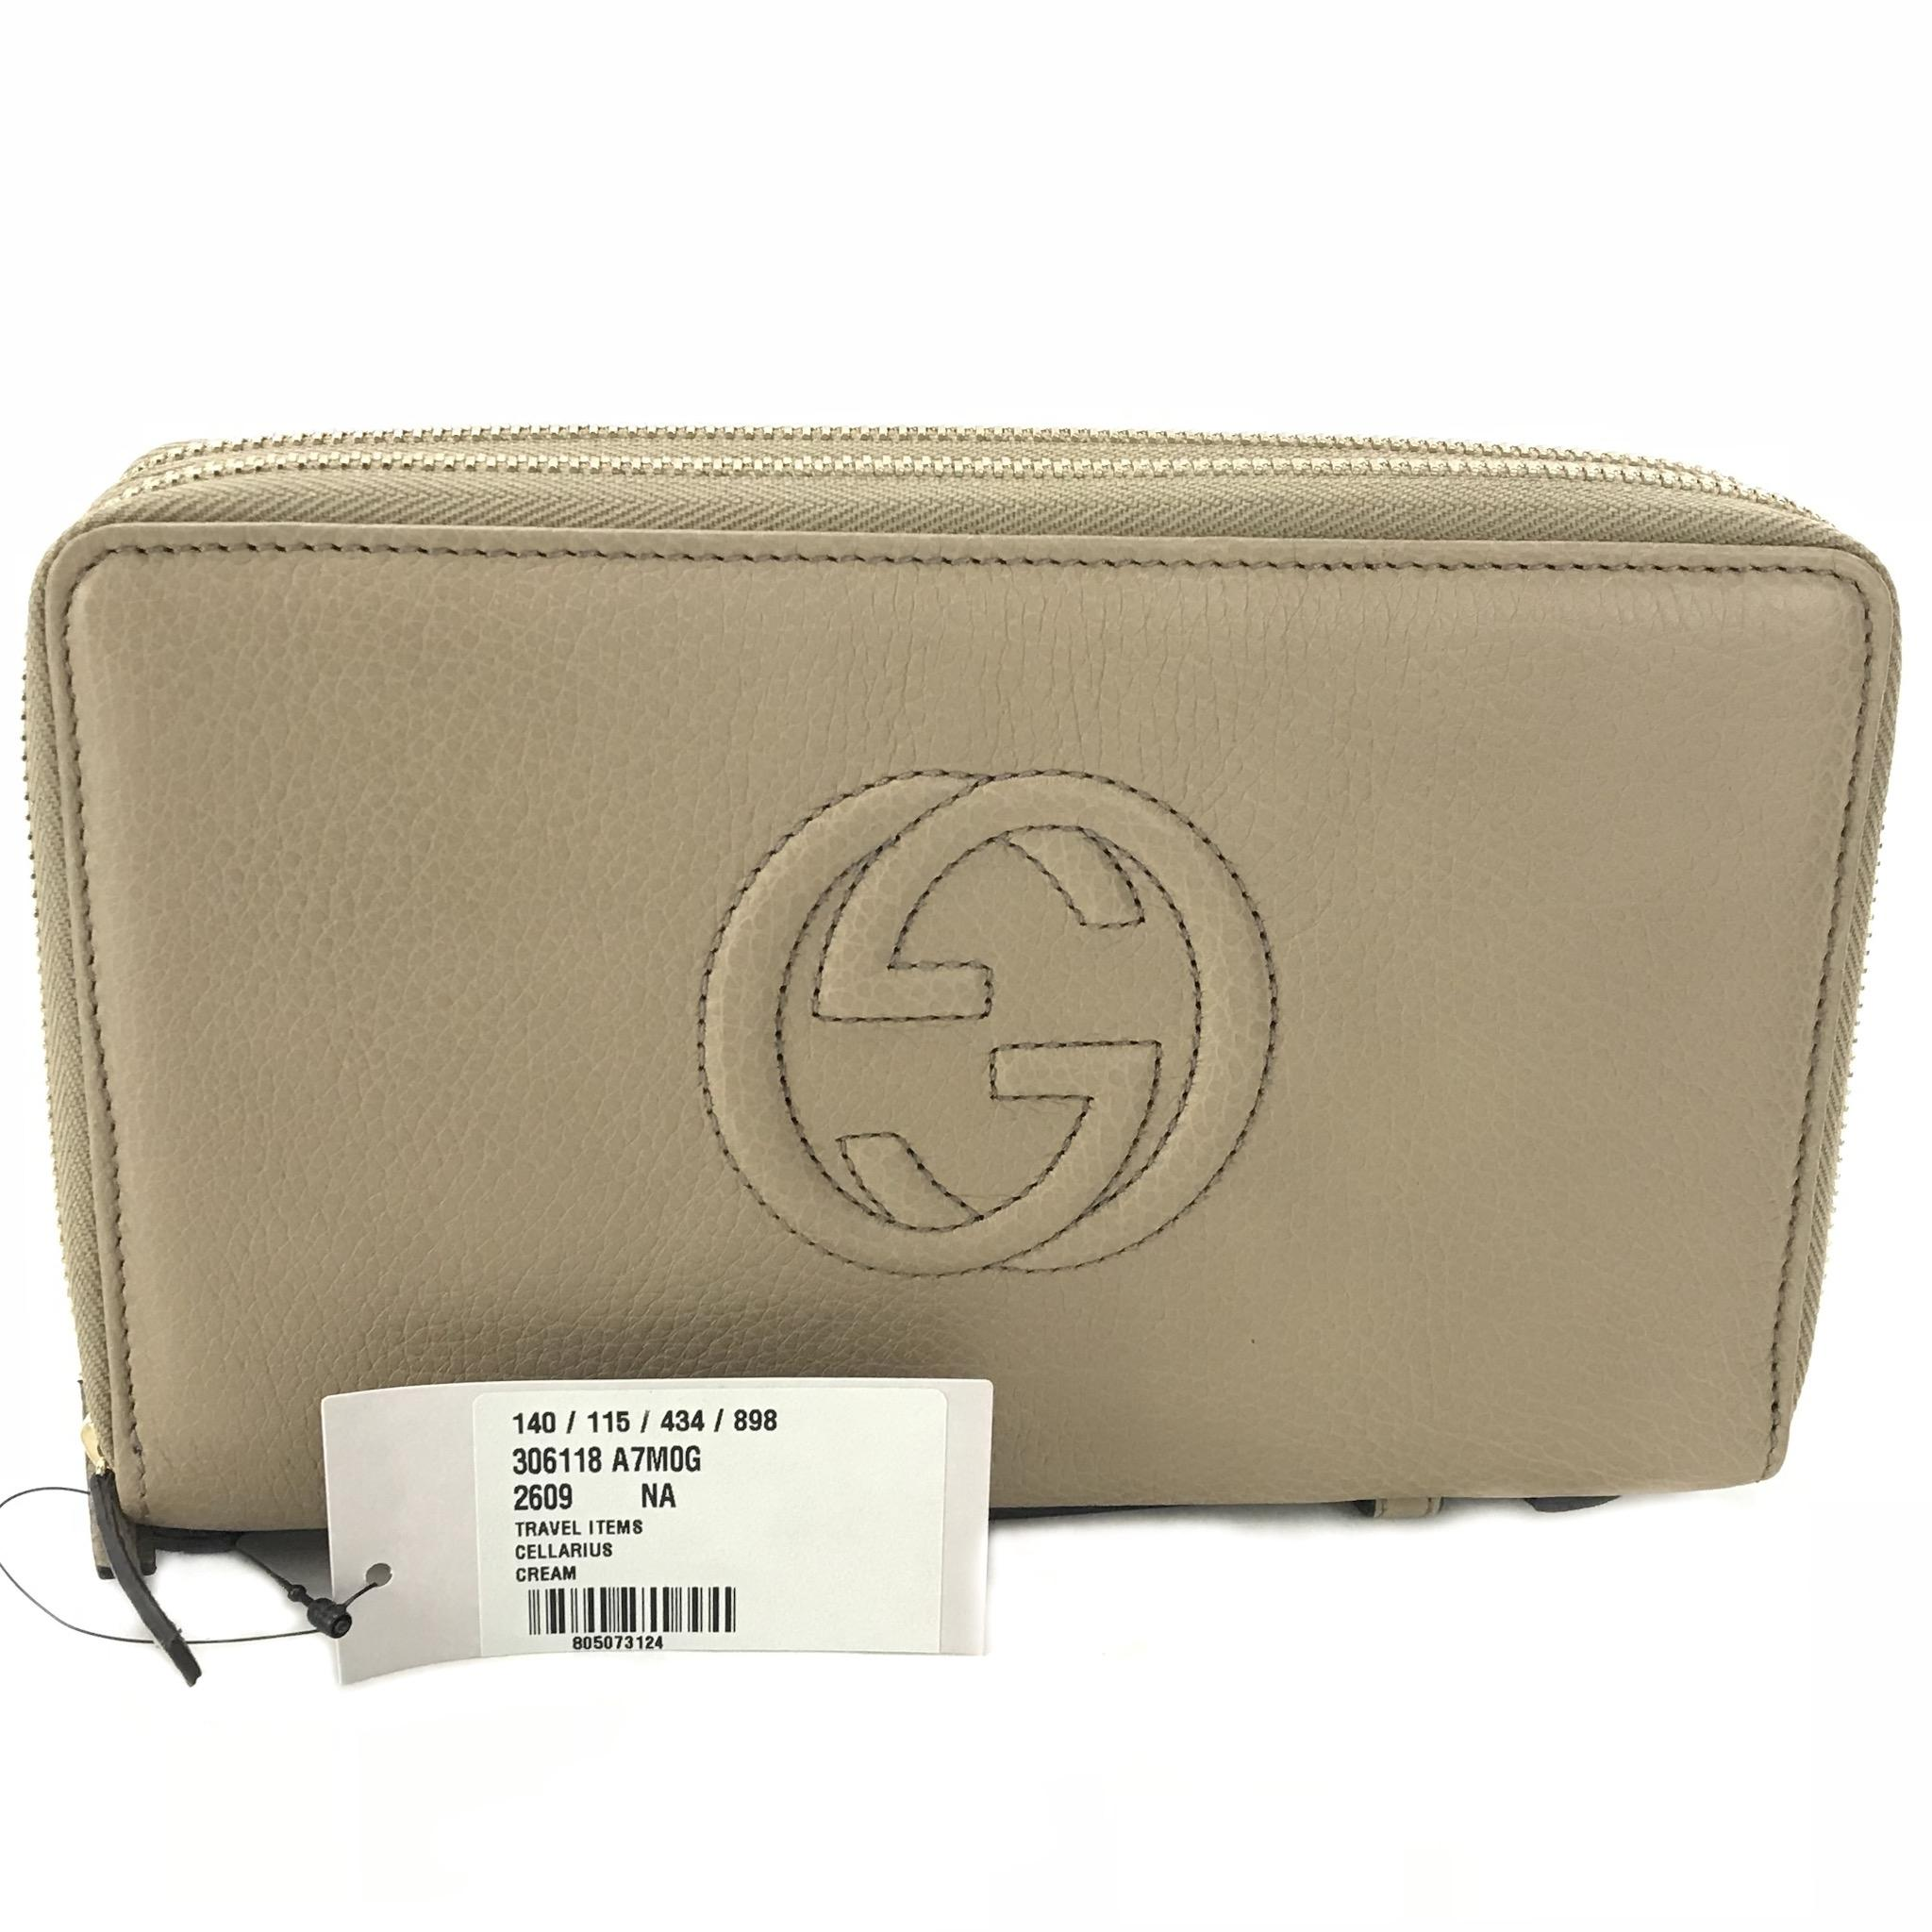 gucci zip around wallet. gucci gucci 306118 soho leather zip around travel document wallet